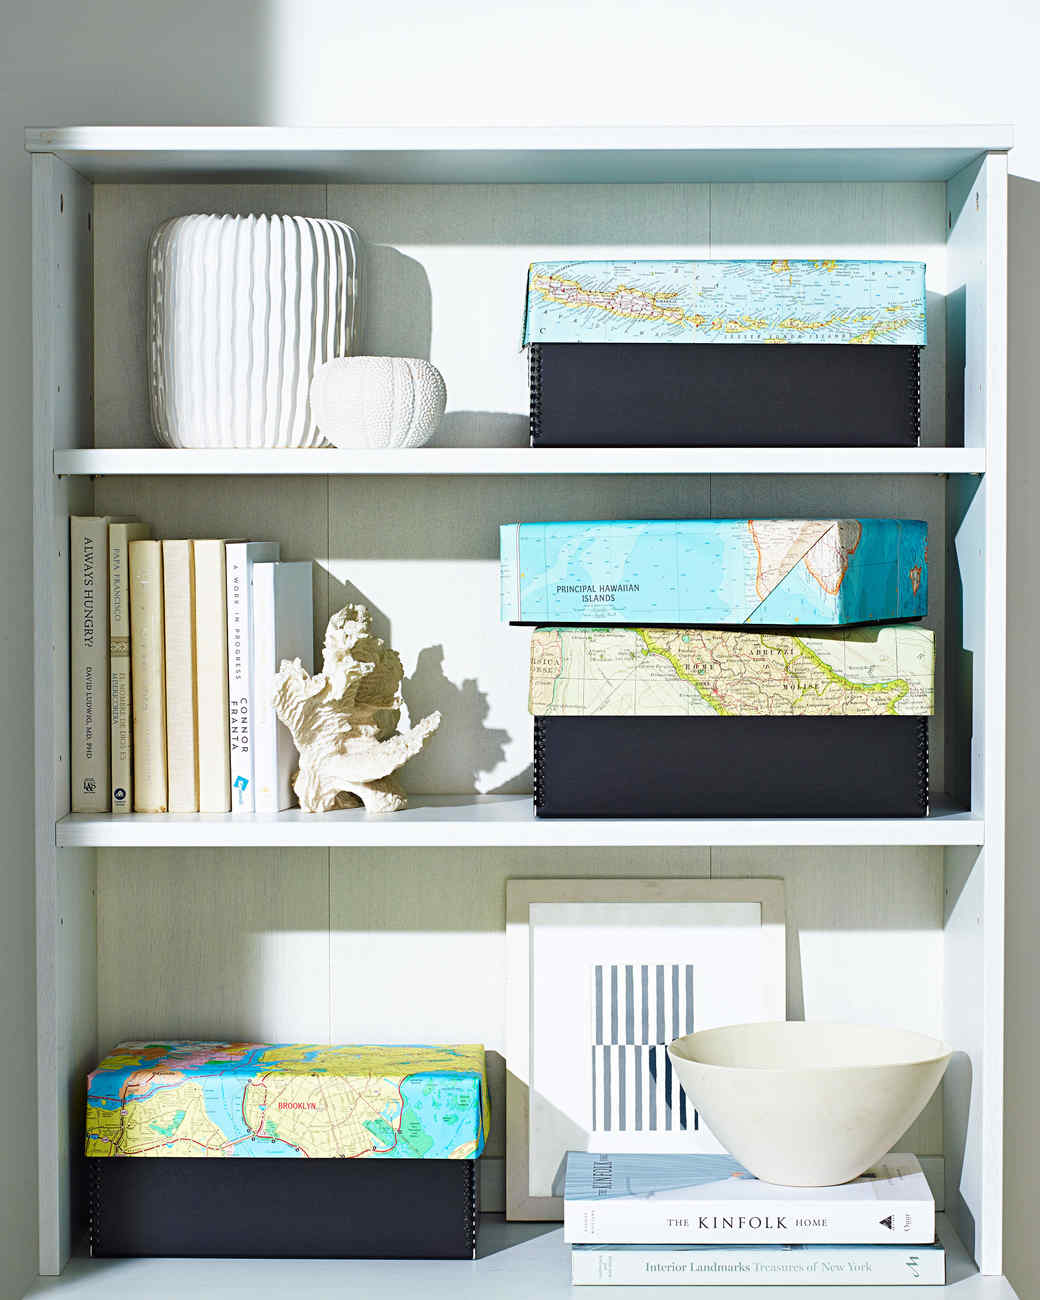 vacation memory box shelf